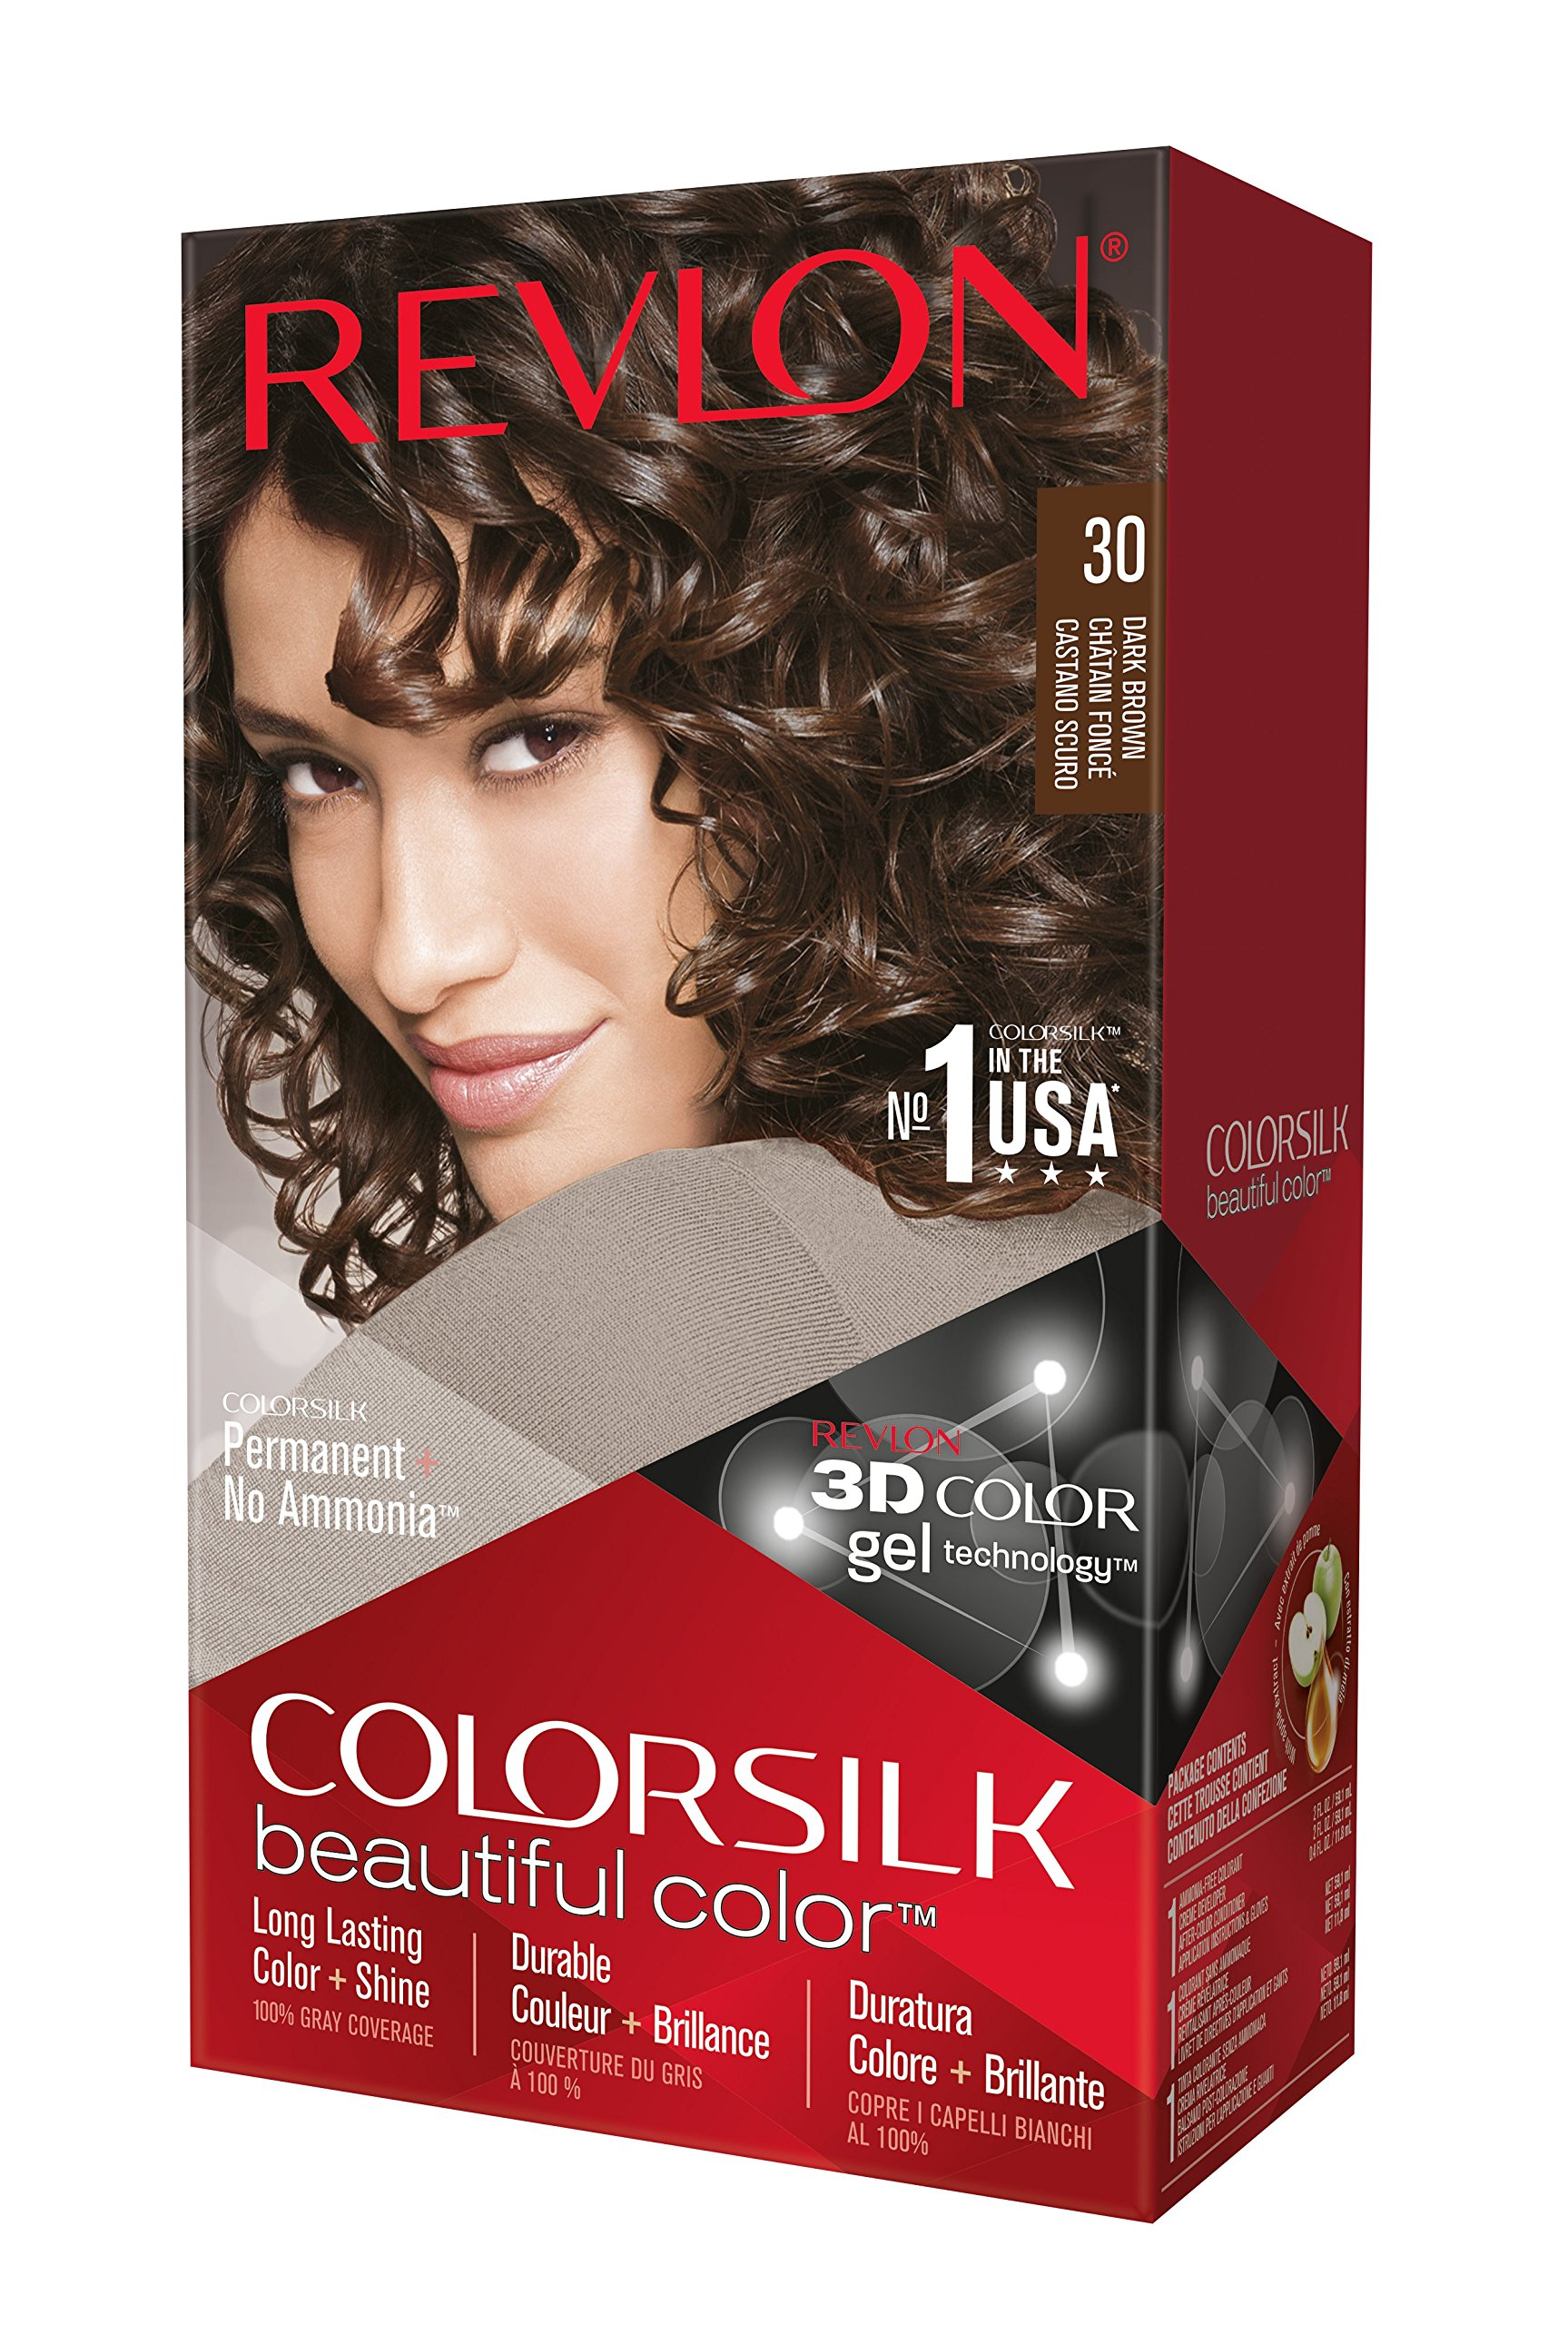 Amazon.com : Revlon Colorsilk Beautiful Color, Brown Black 20 : Chemical Hair Dyes : Beauty